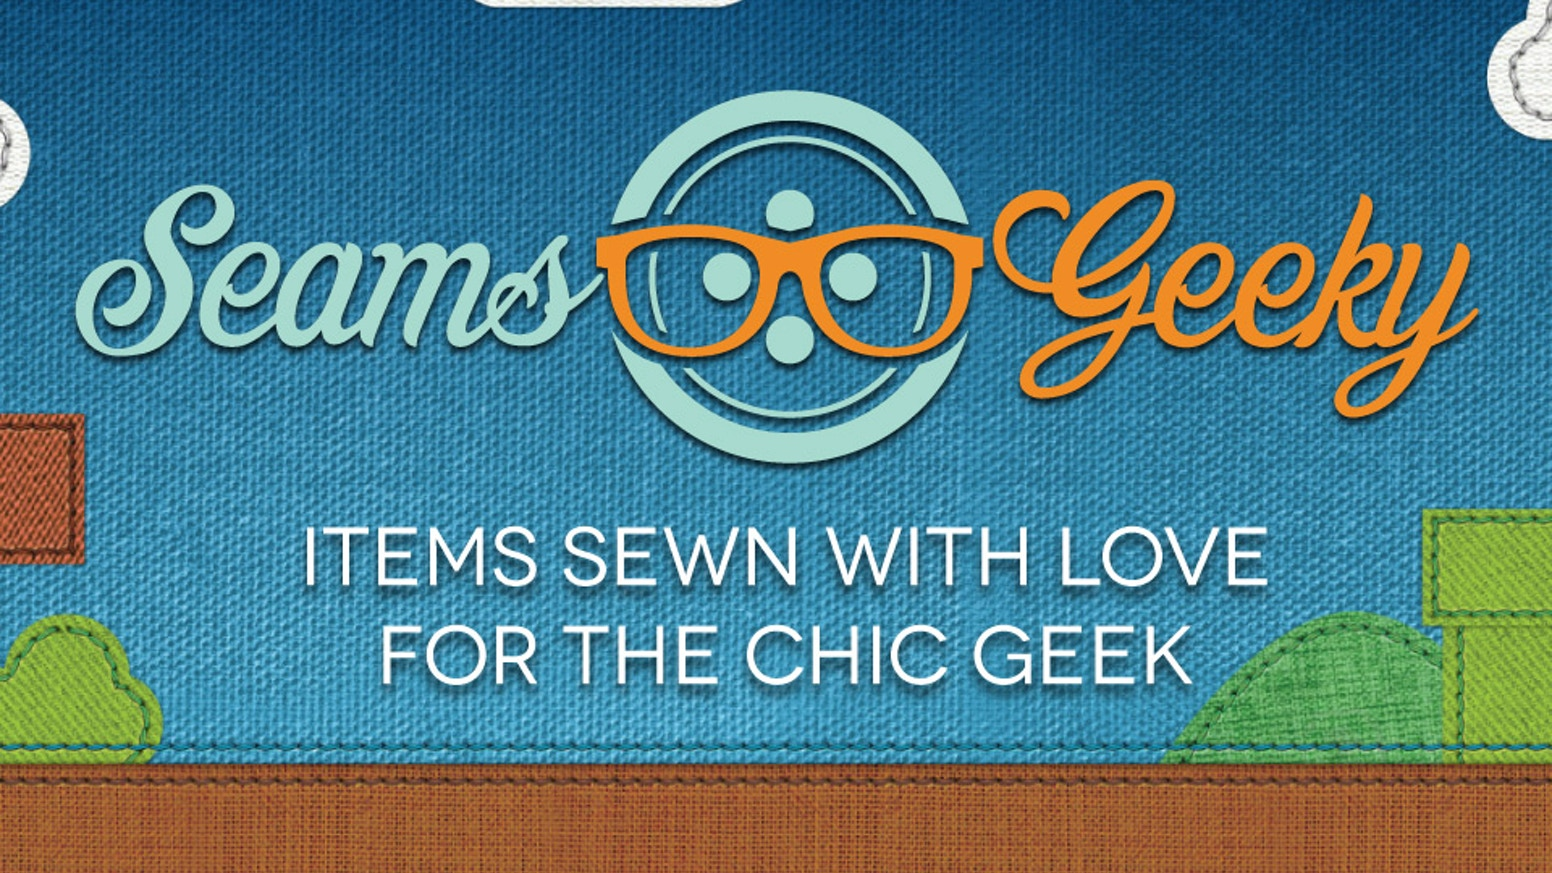 Seams Geeky | Items Sewn with Love for the Chic Geek by